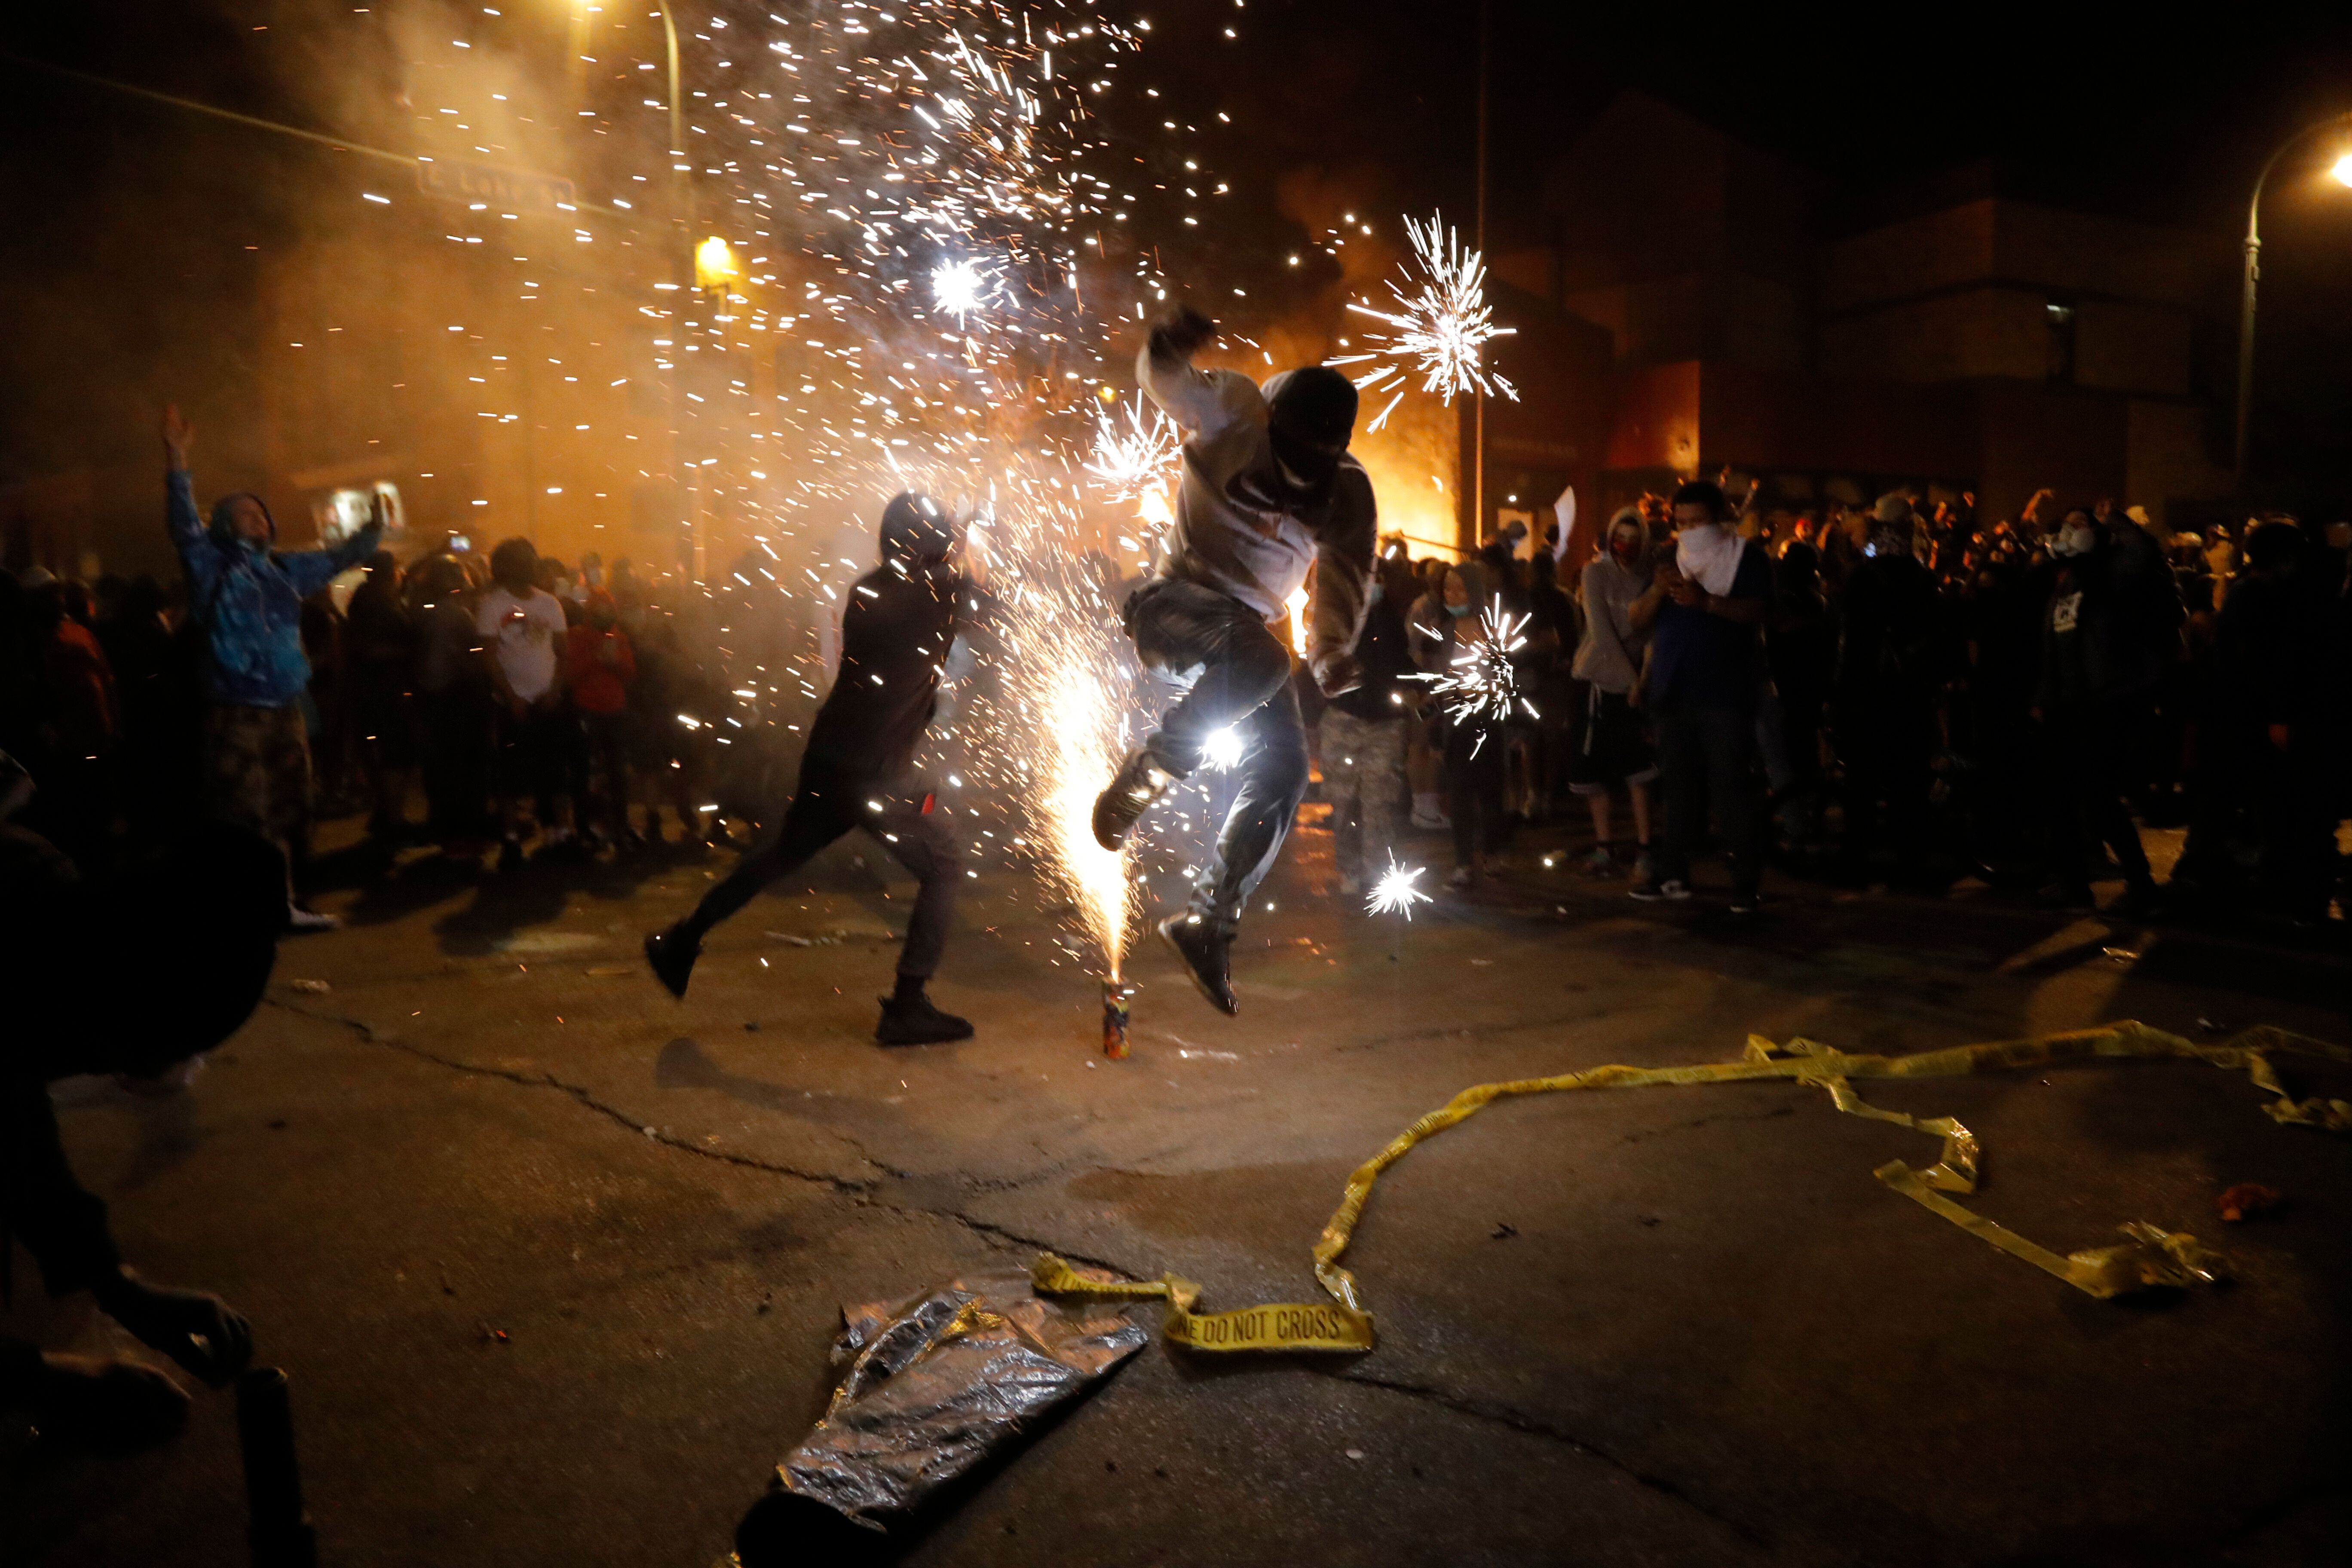 Protesters set off fireworks as a fire burns at the Minneapolis police 3rd Precinct building, May 28, following the police ki